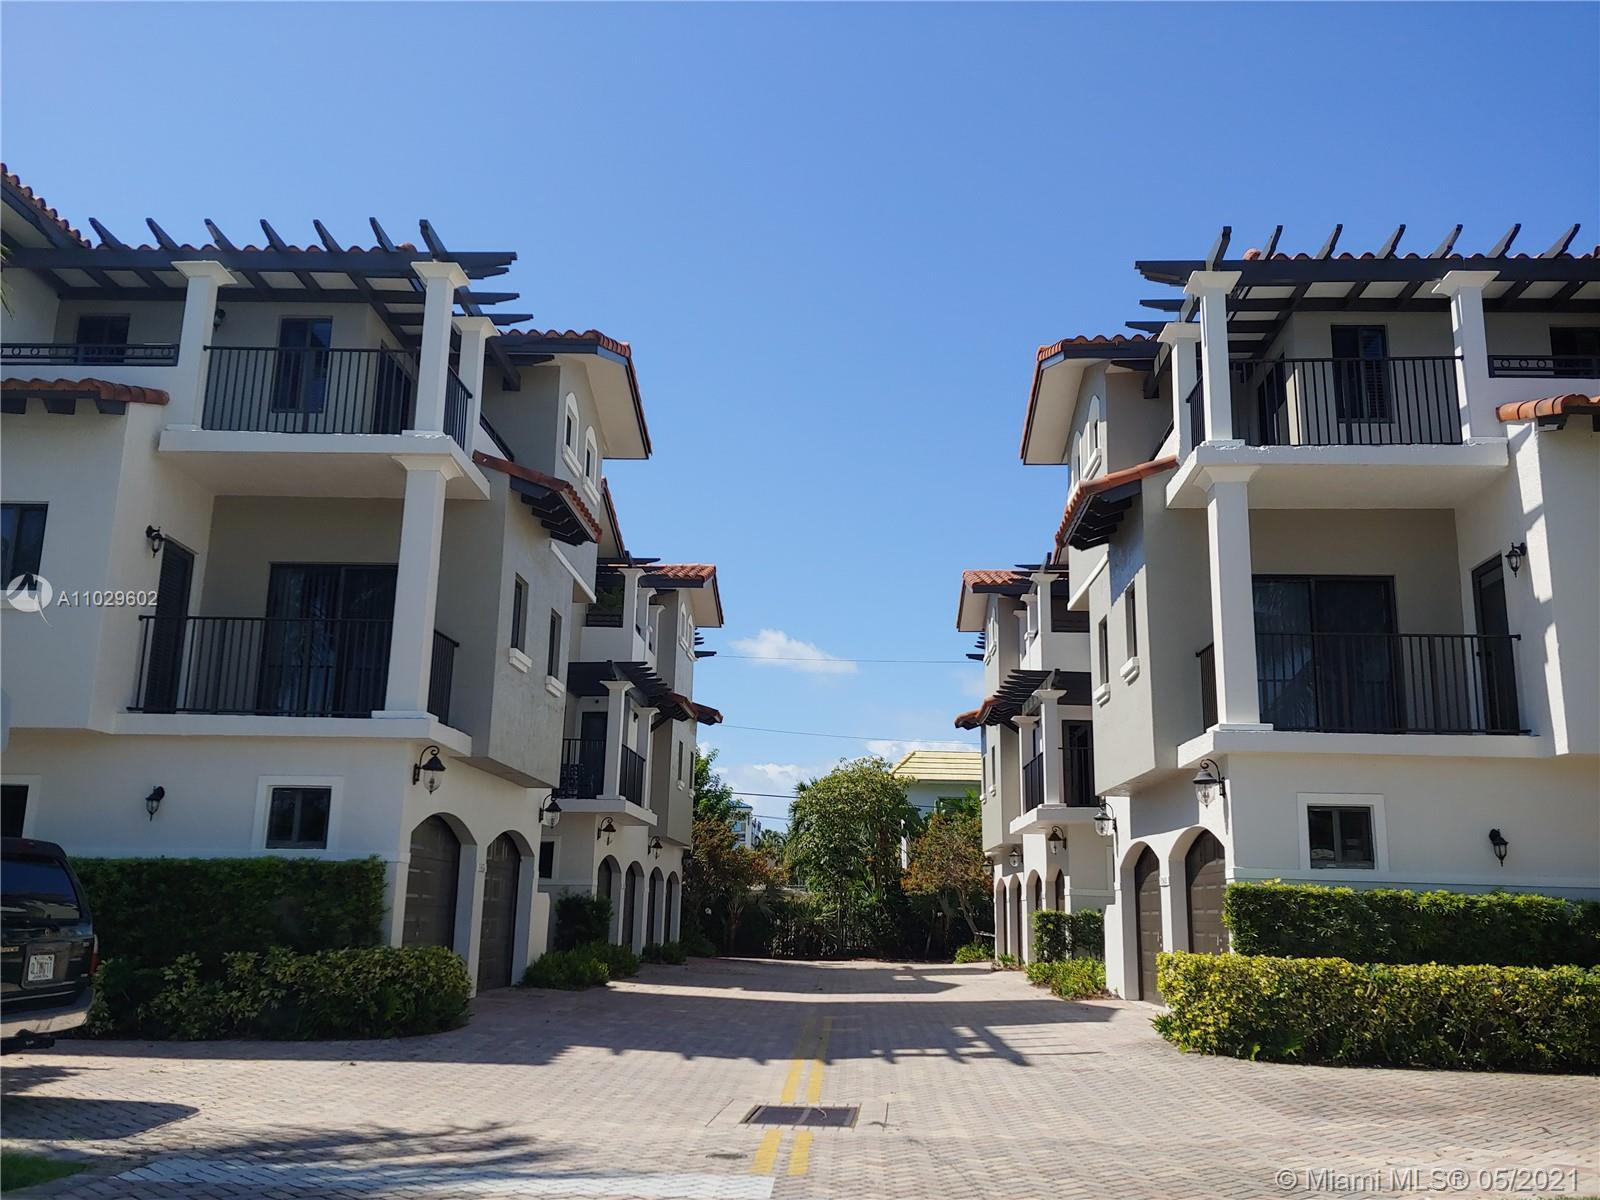 6 UNIT LUXURY TOWNHOME DEVELOPMENT LOCATED BETWEEN THE INTRACOASTAL AND THE OCEAN, 2 BLOCKS FROM TH